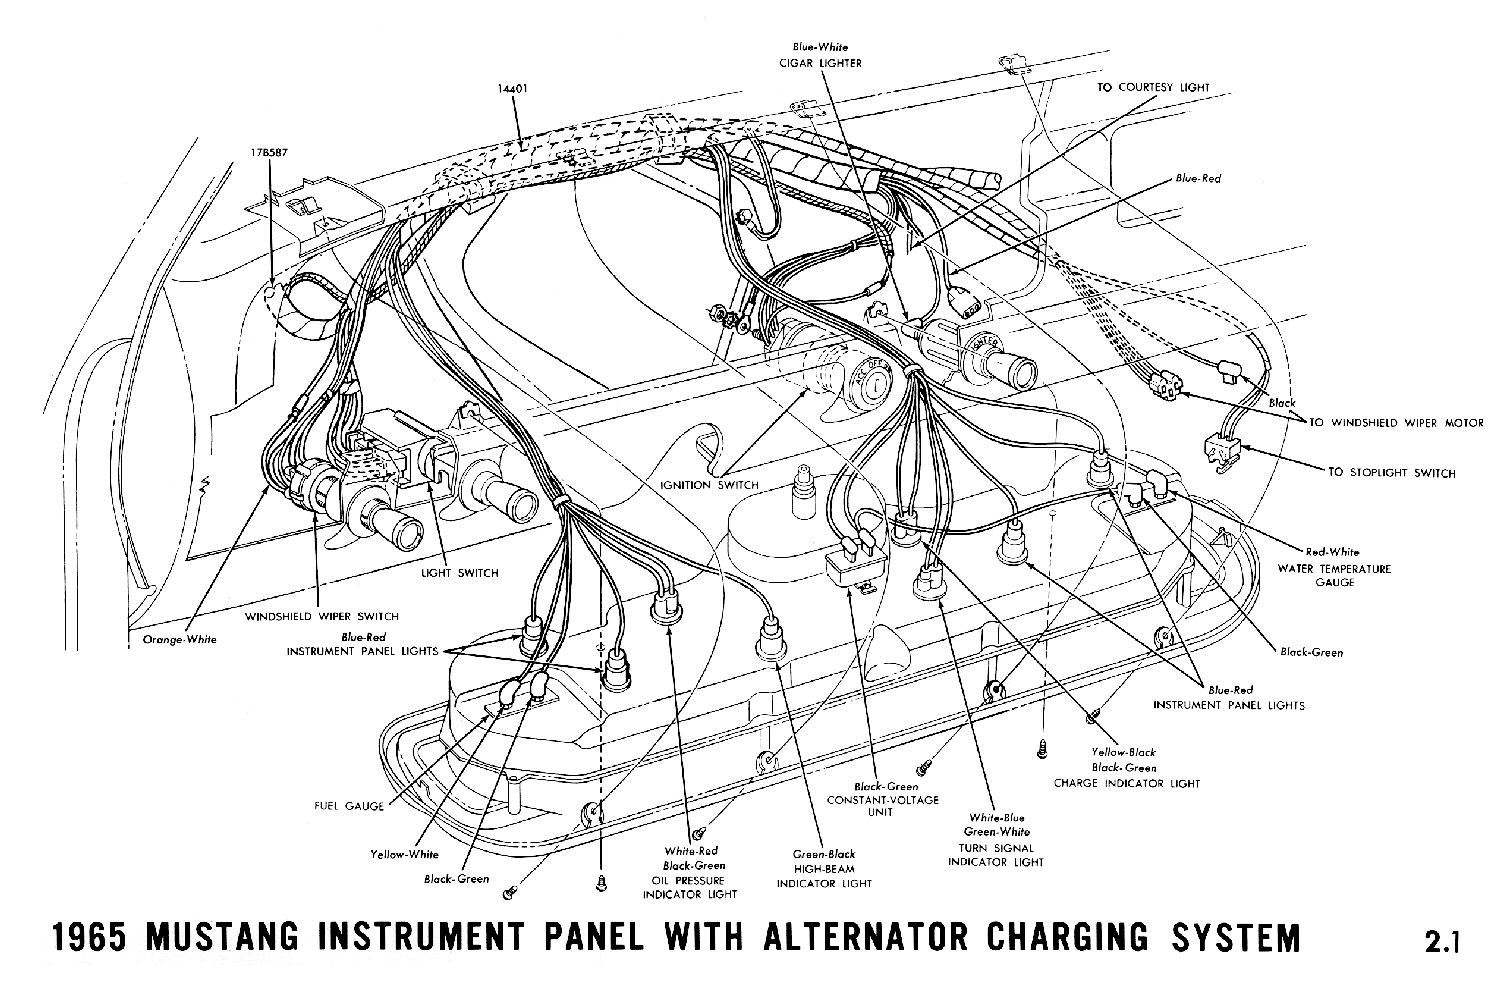 1965 Mustang Wiring Diagrams Average Joe Restoration Diagram Alternator 1965a